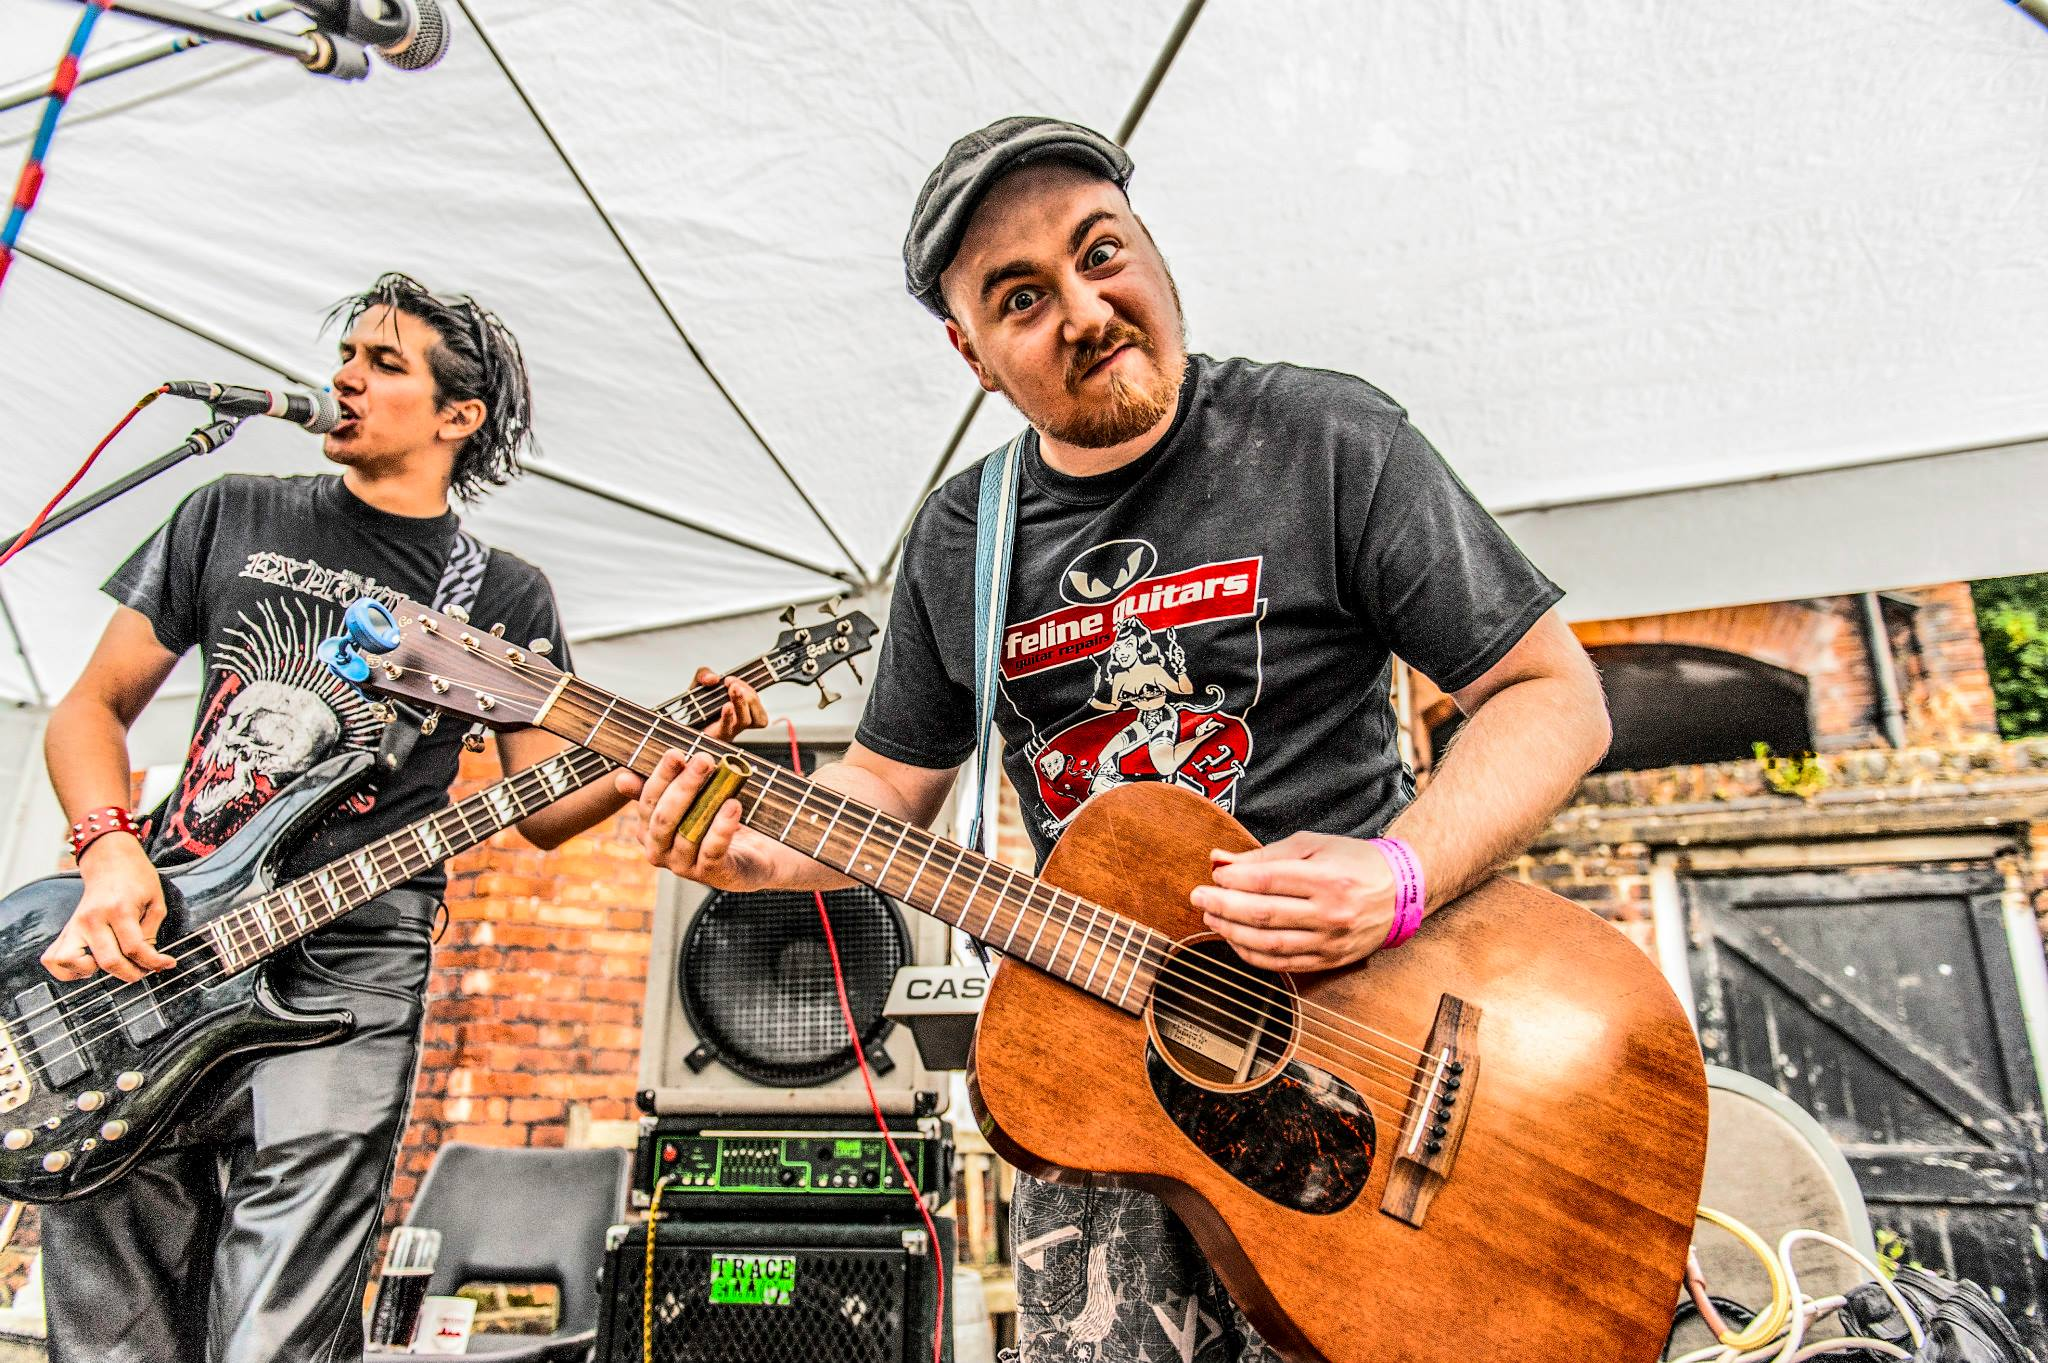 miLarKey performing at folk & blues festival - Photograph courtesy of Pete Thor Photography